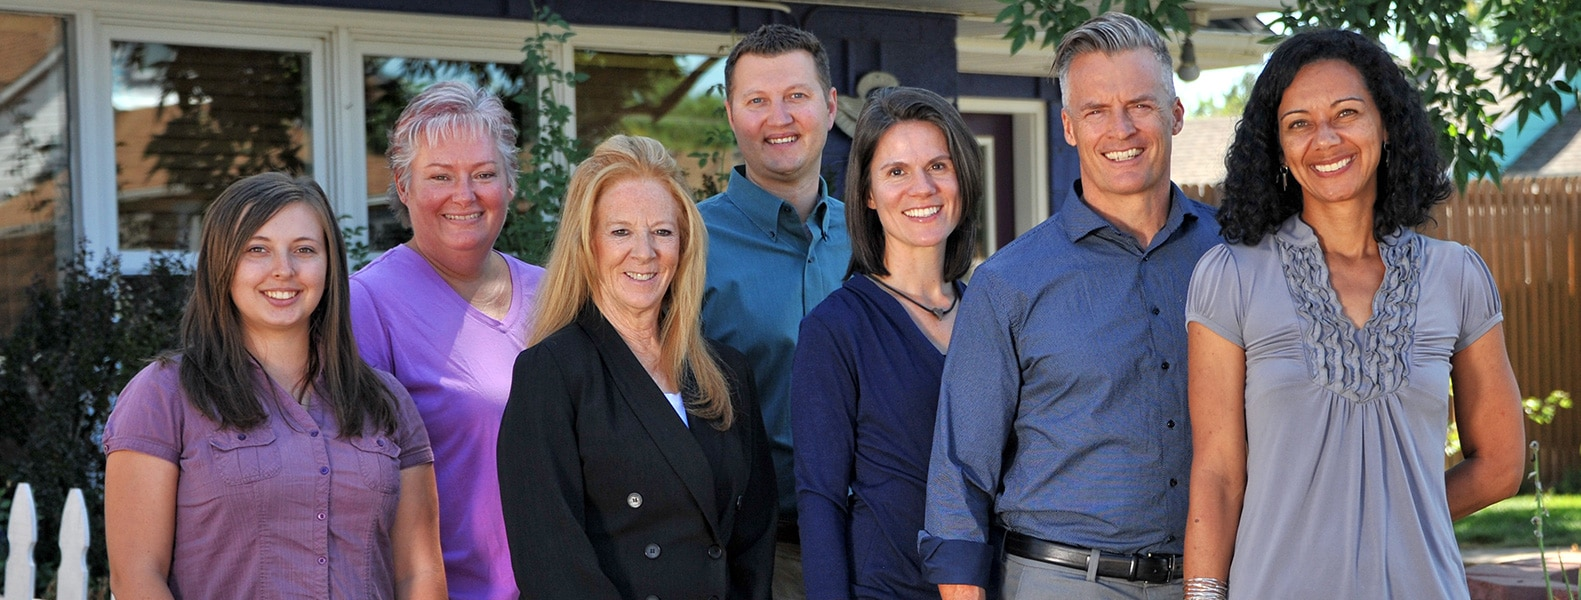 The staff at Chiropractic Centers of Erie and Longmont